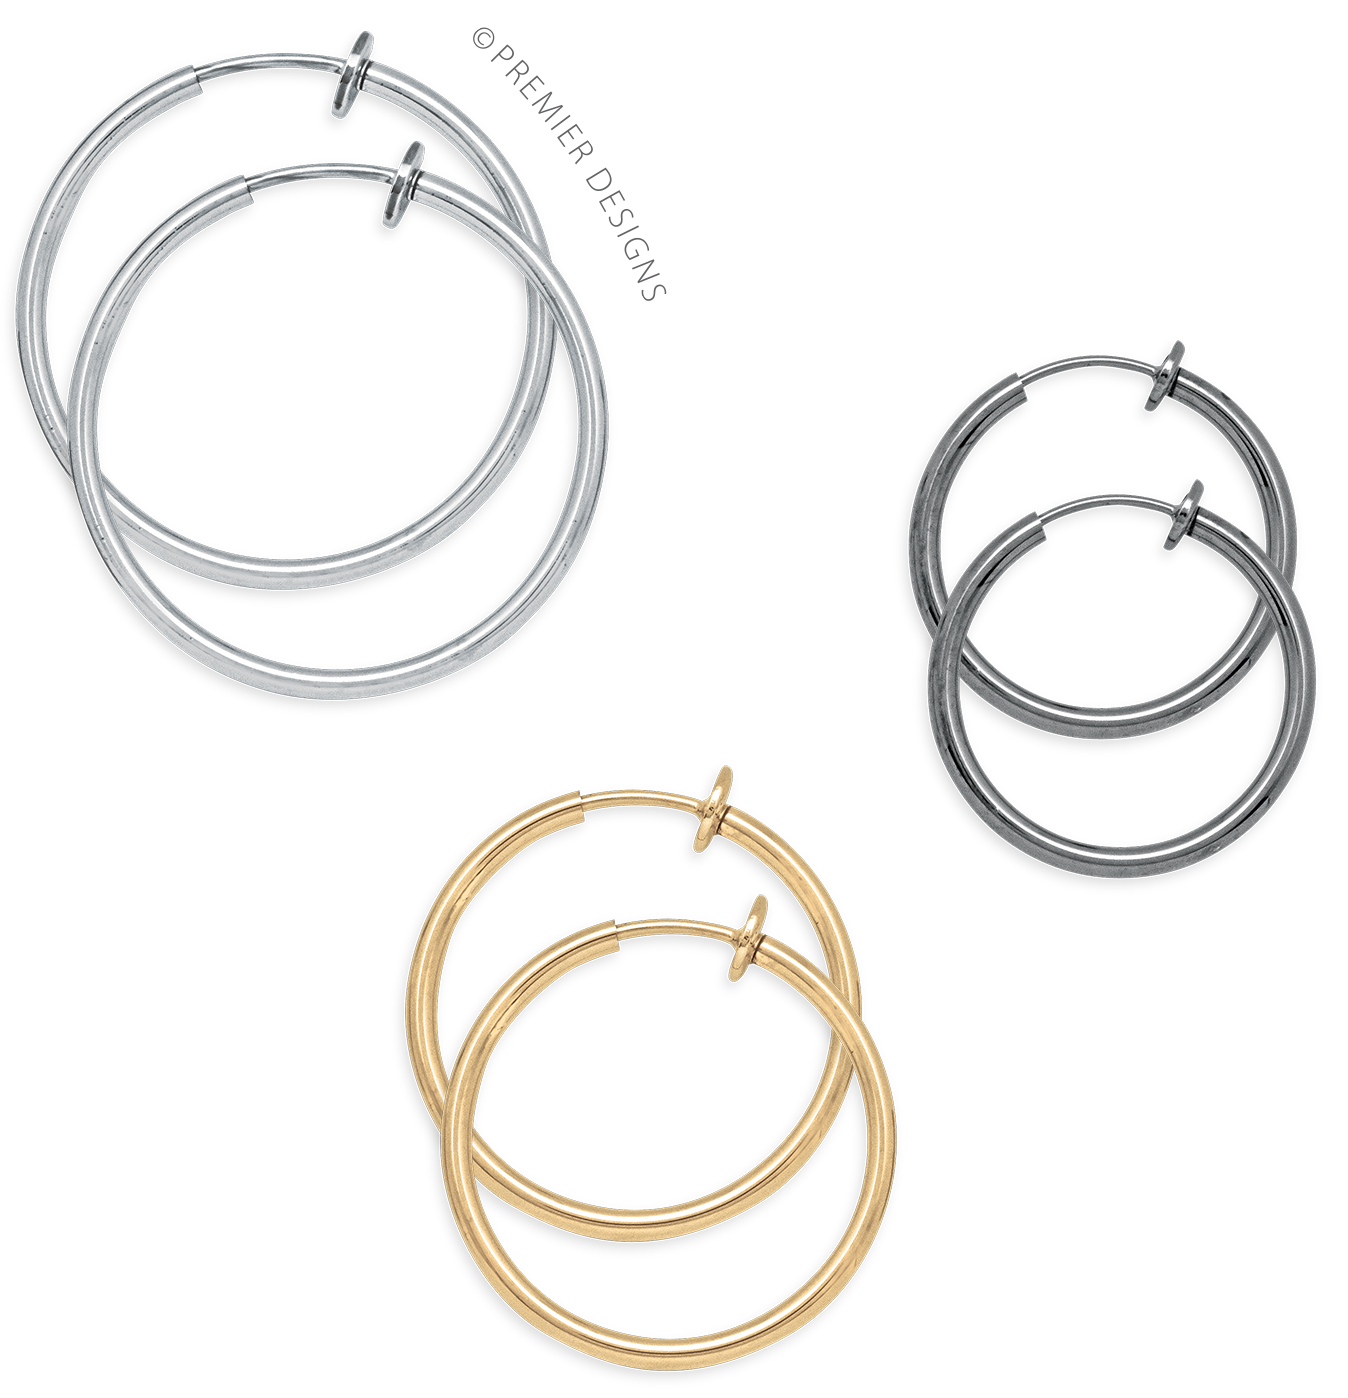 Jewelry clip loop. At attention po earring